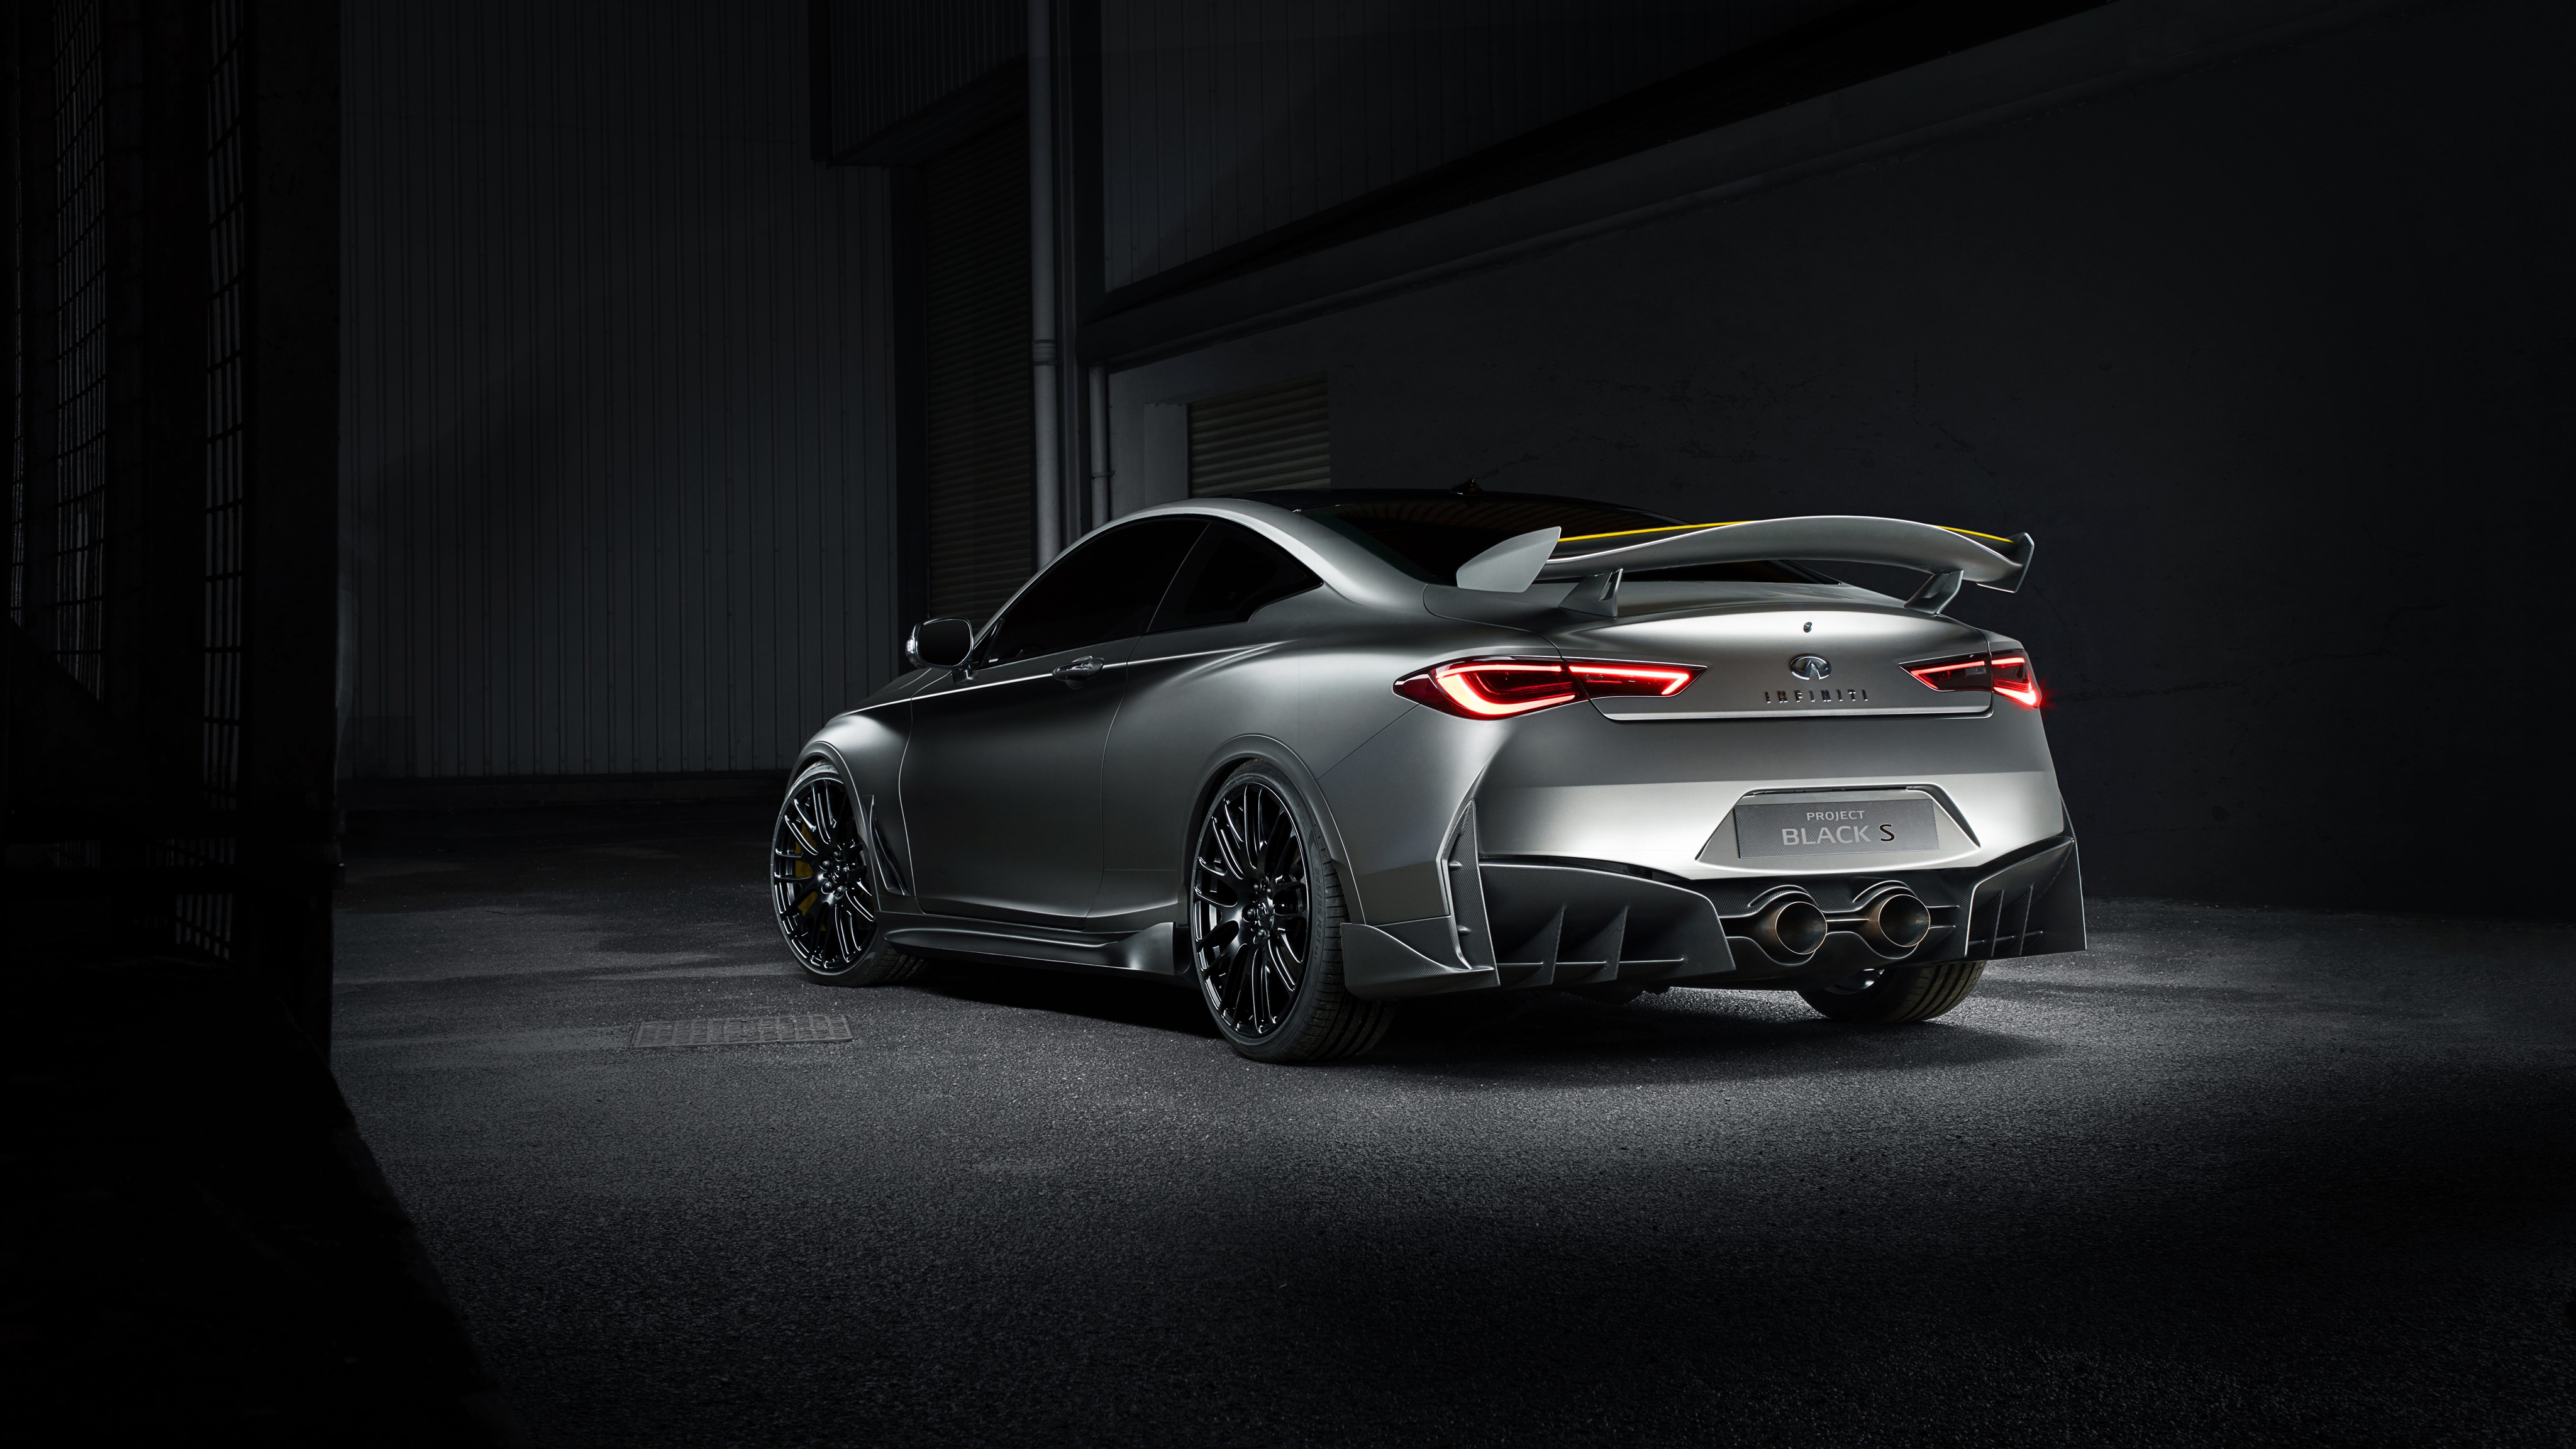 Infiniti Q60 Wallpapers and Background Images - stmed.net